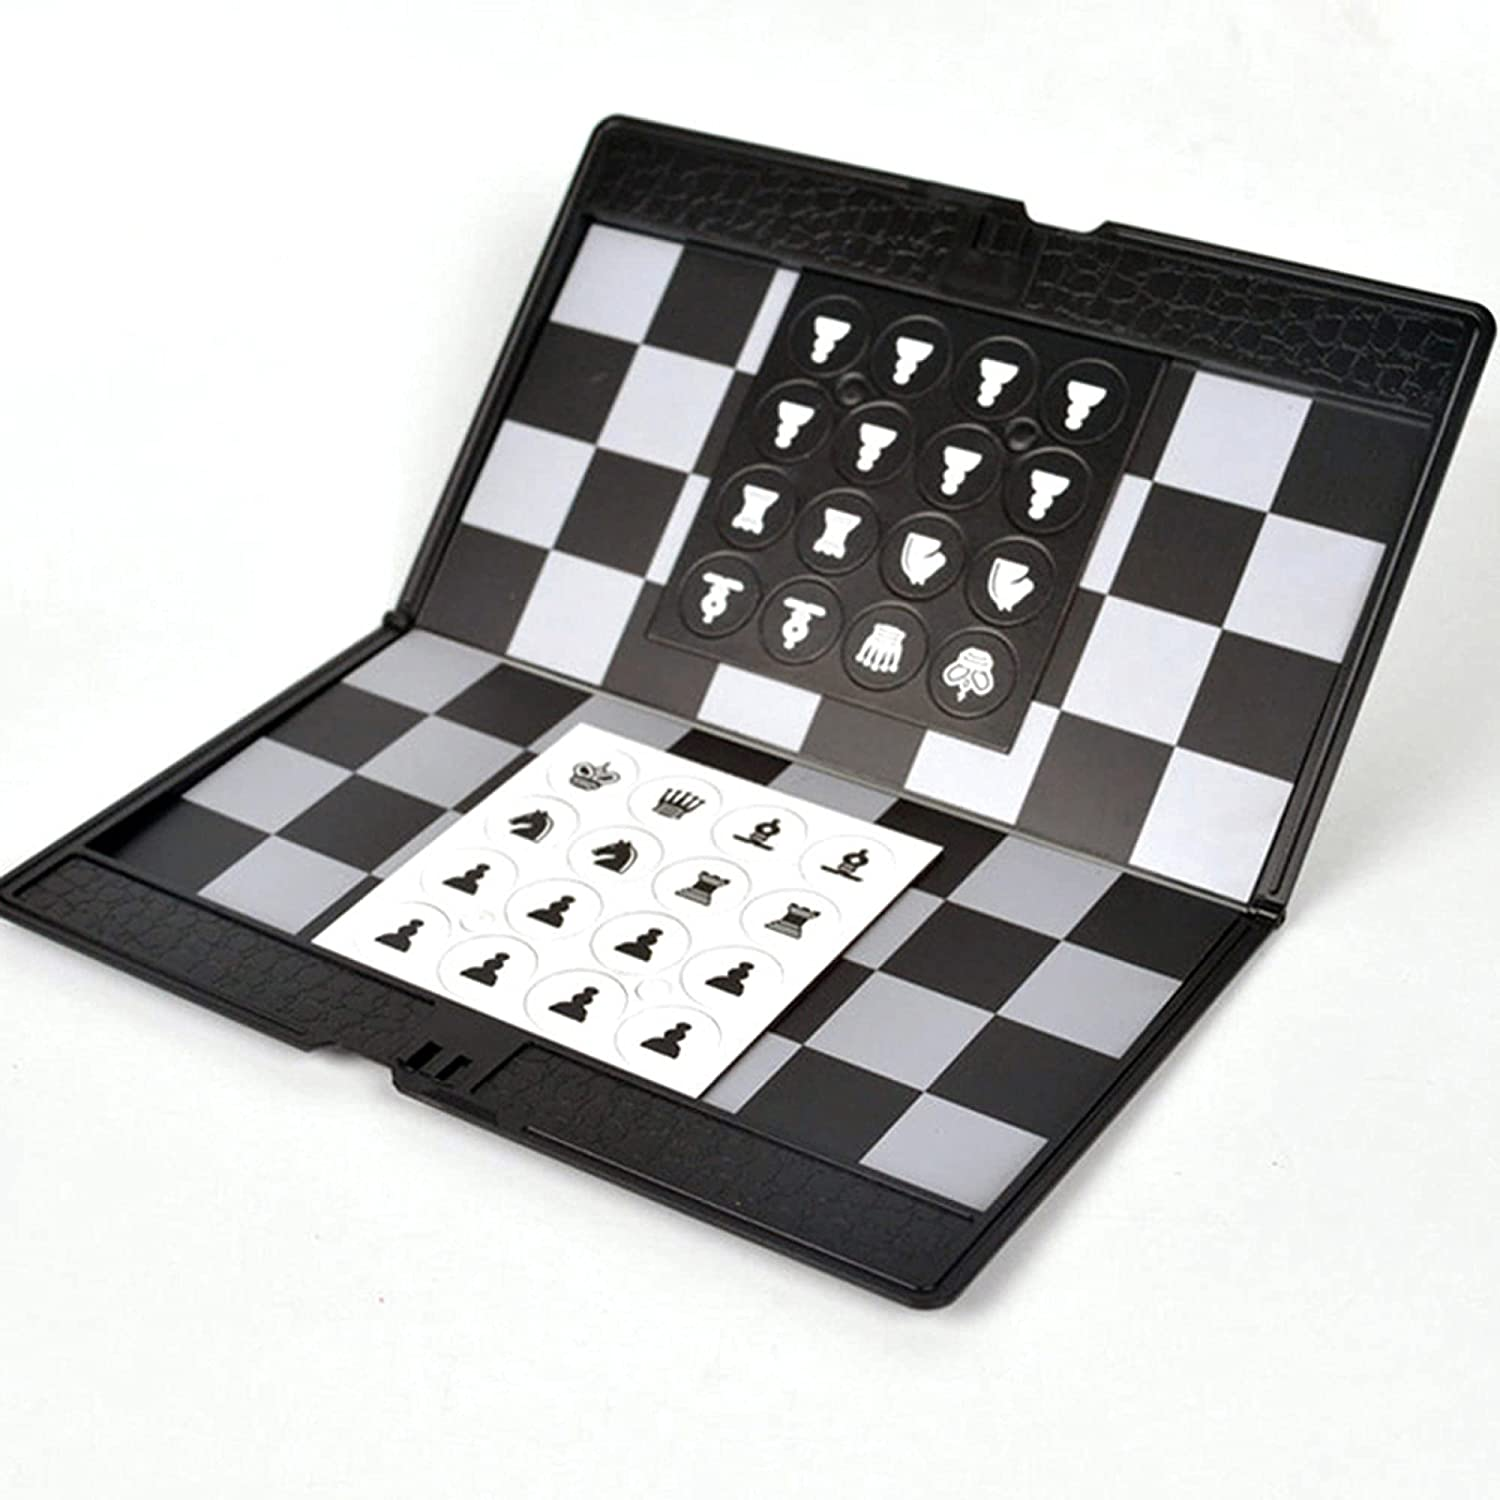 LINGOSHUN sale Chess Board Set Portable Magnetic Folding Chessbo Soft In a popularity